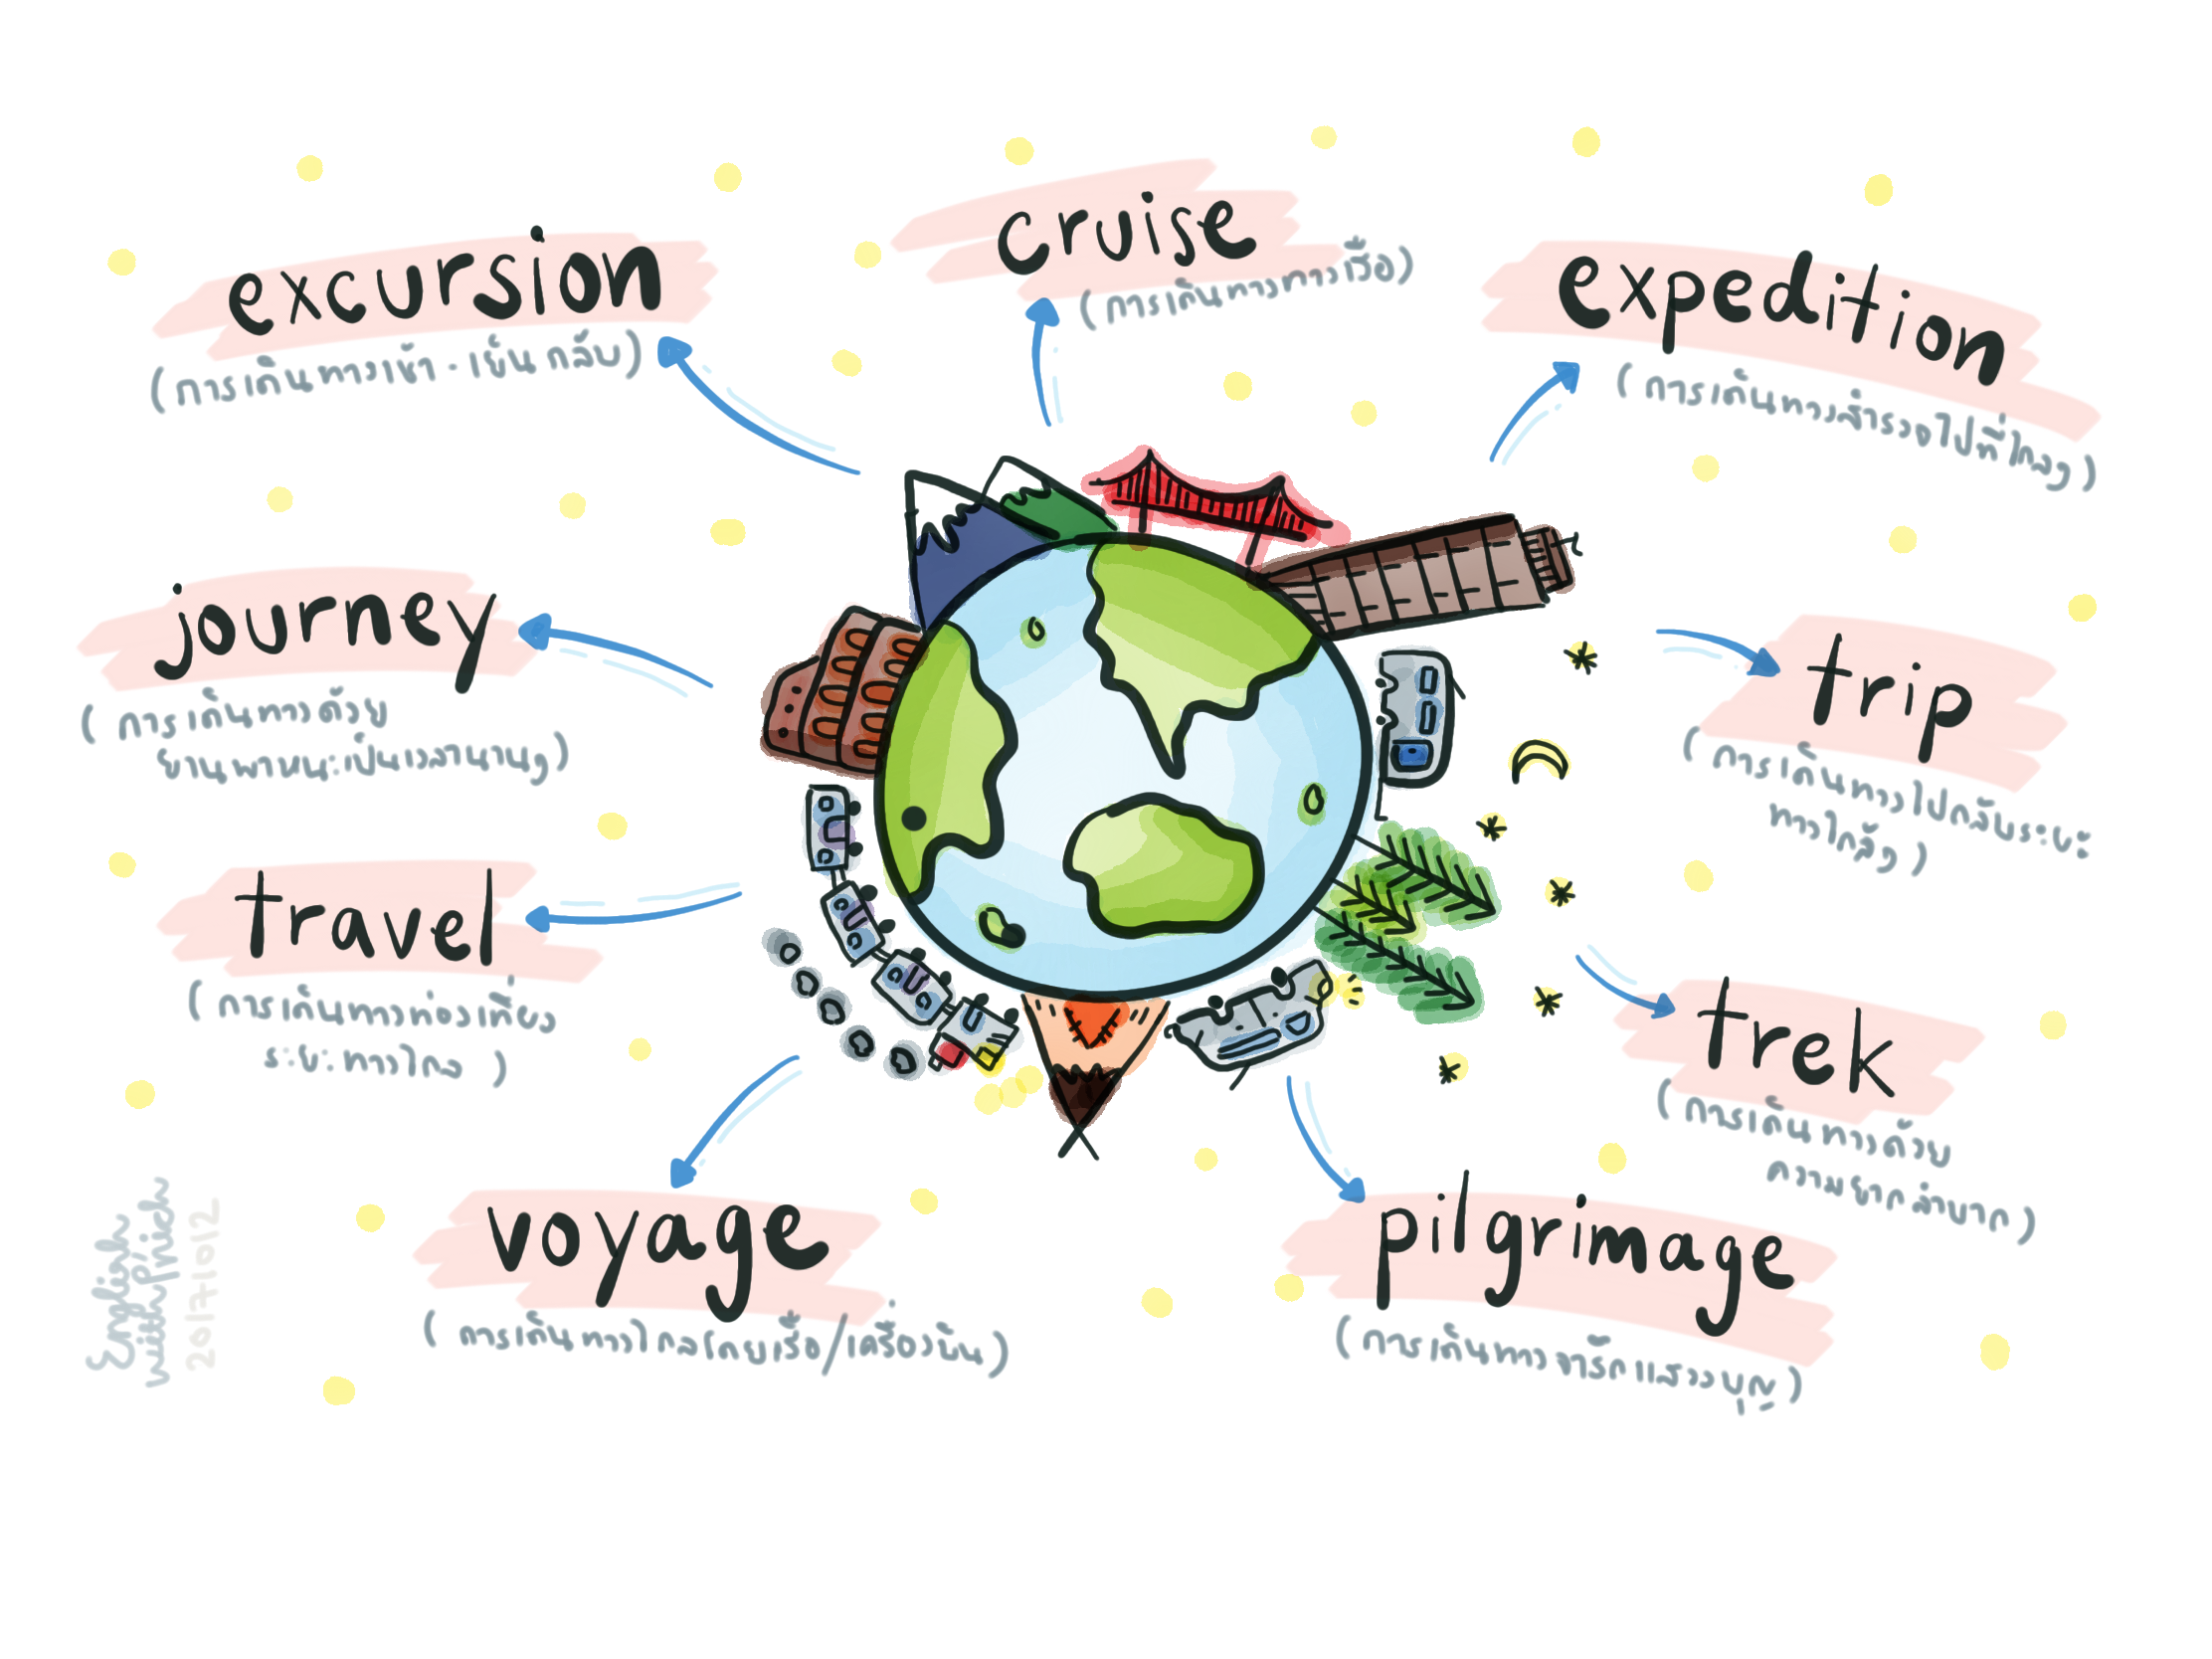 Travel synonym words  Cruise excursions, Travel, English vocabulary